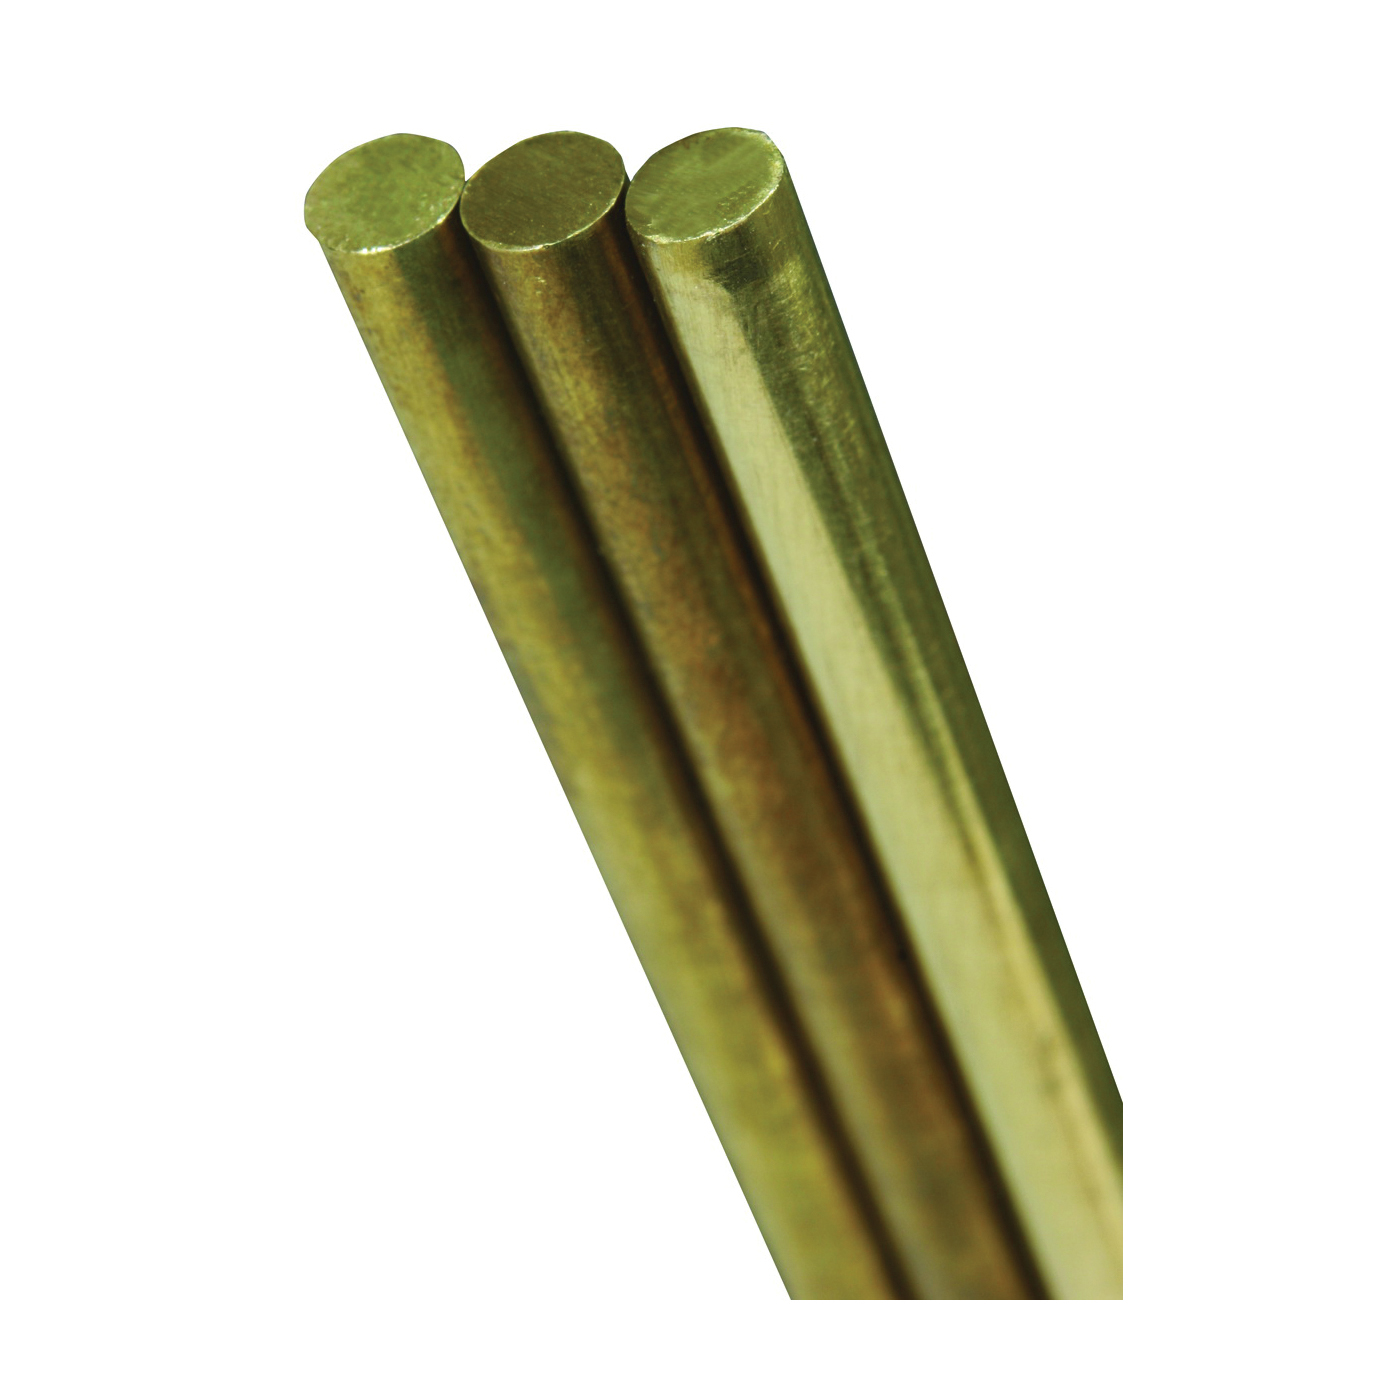 Picture of K & S 8164 Round Rod, 1/8 in Dia, 12 in L, 260 Brass, 260 Grade